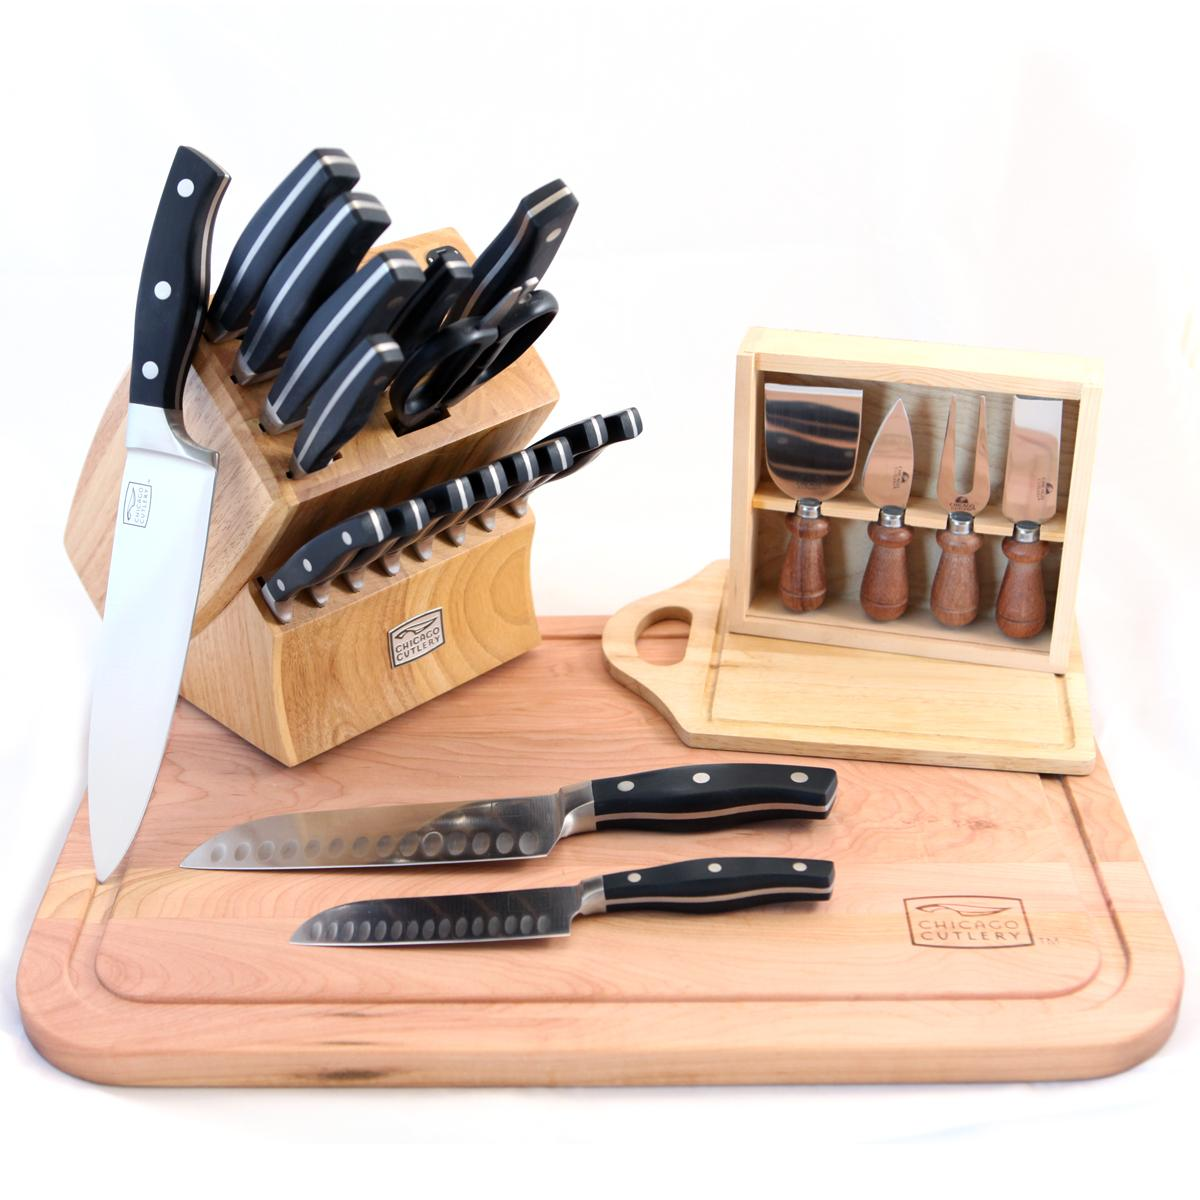 Chicago Cutlery Insignia2 26-piece Knife Set